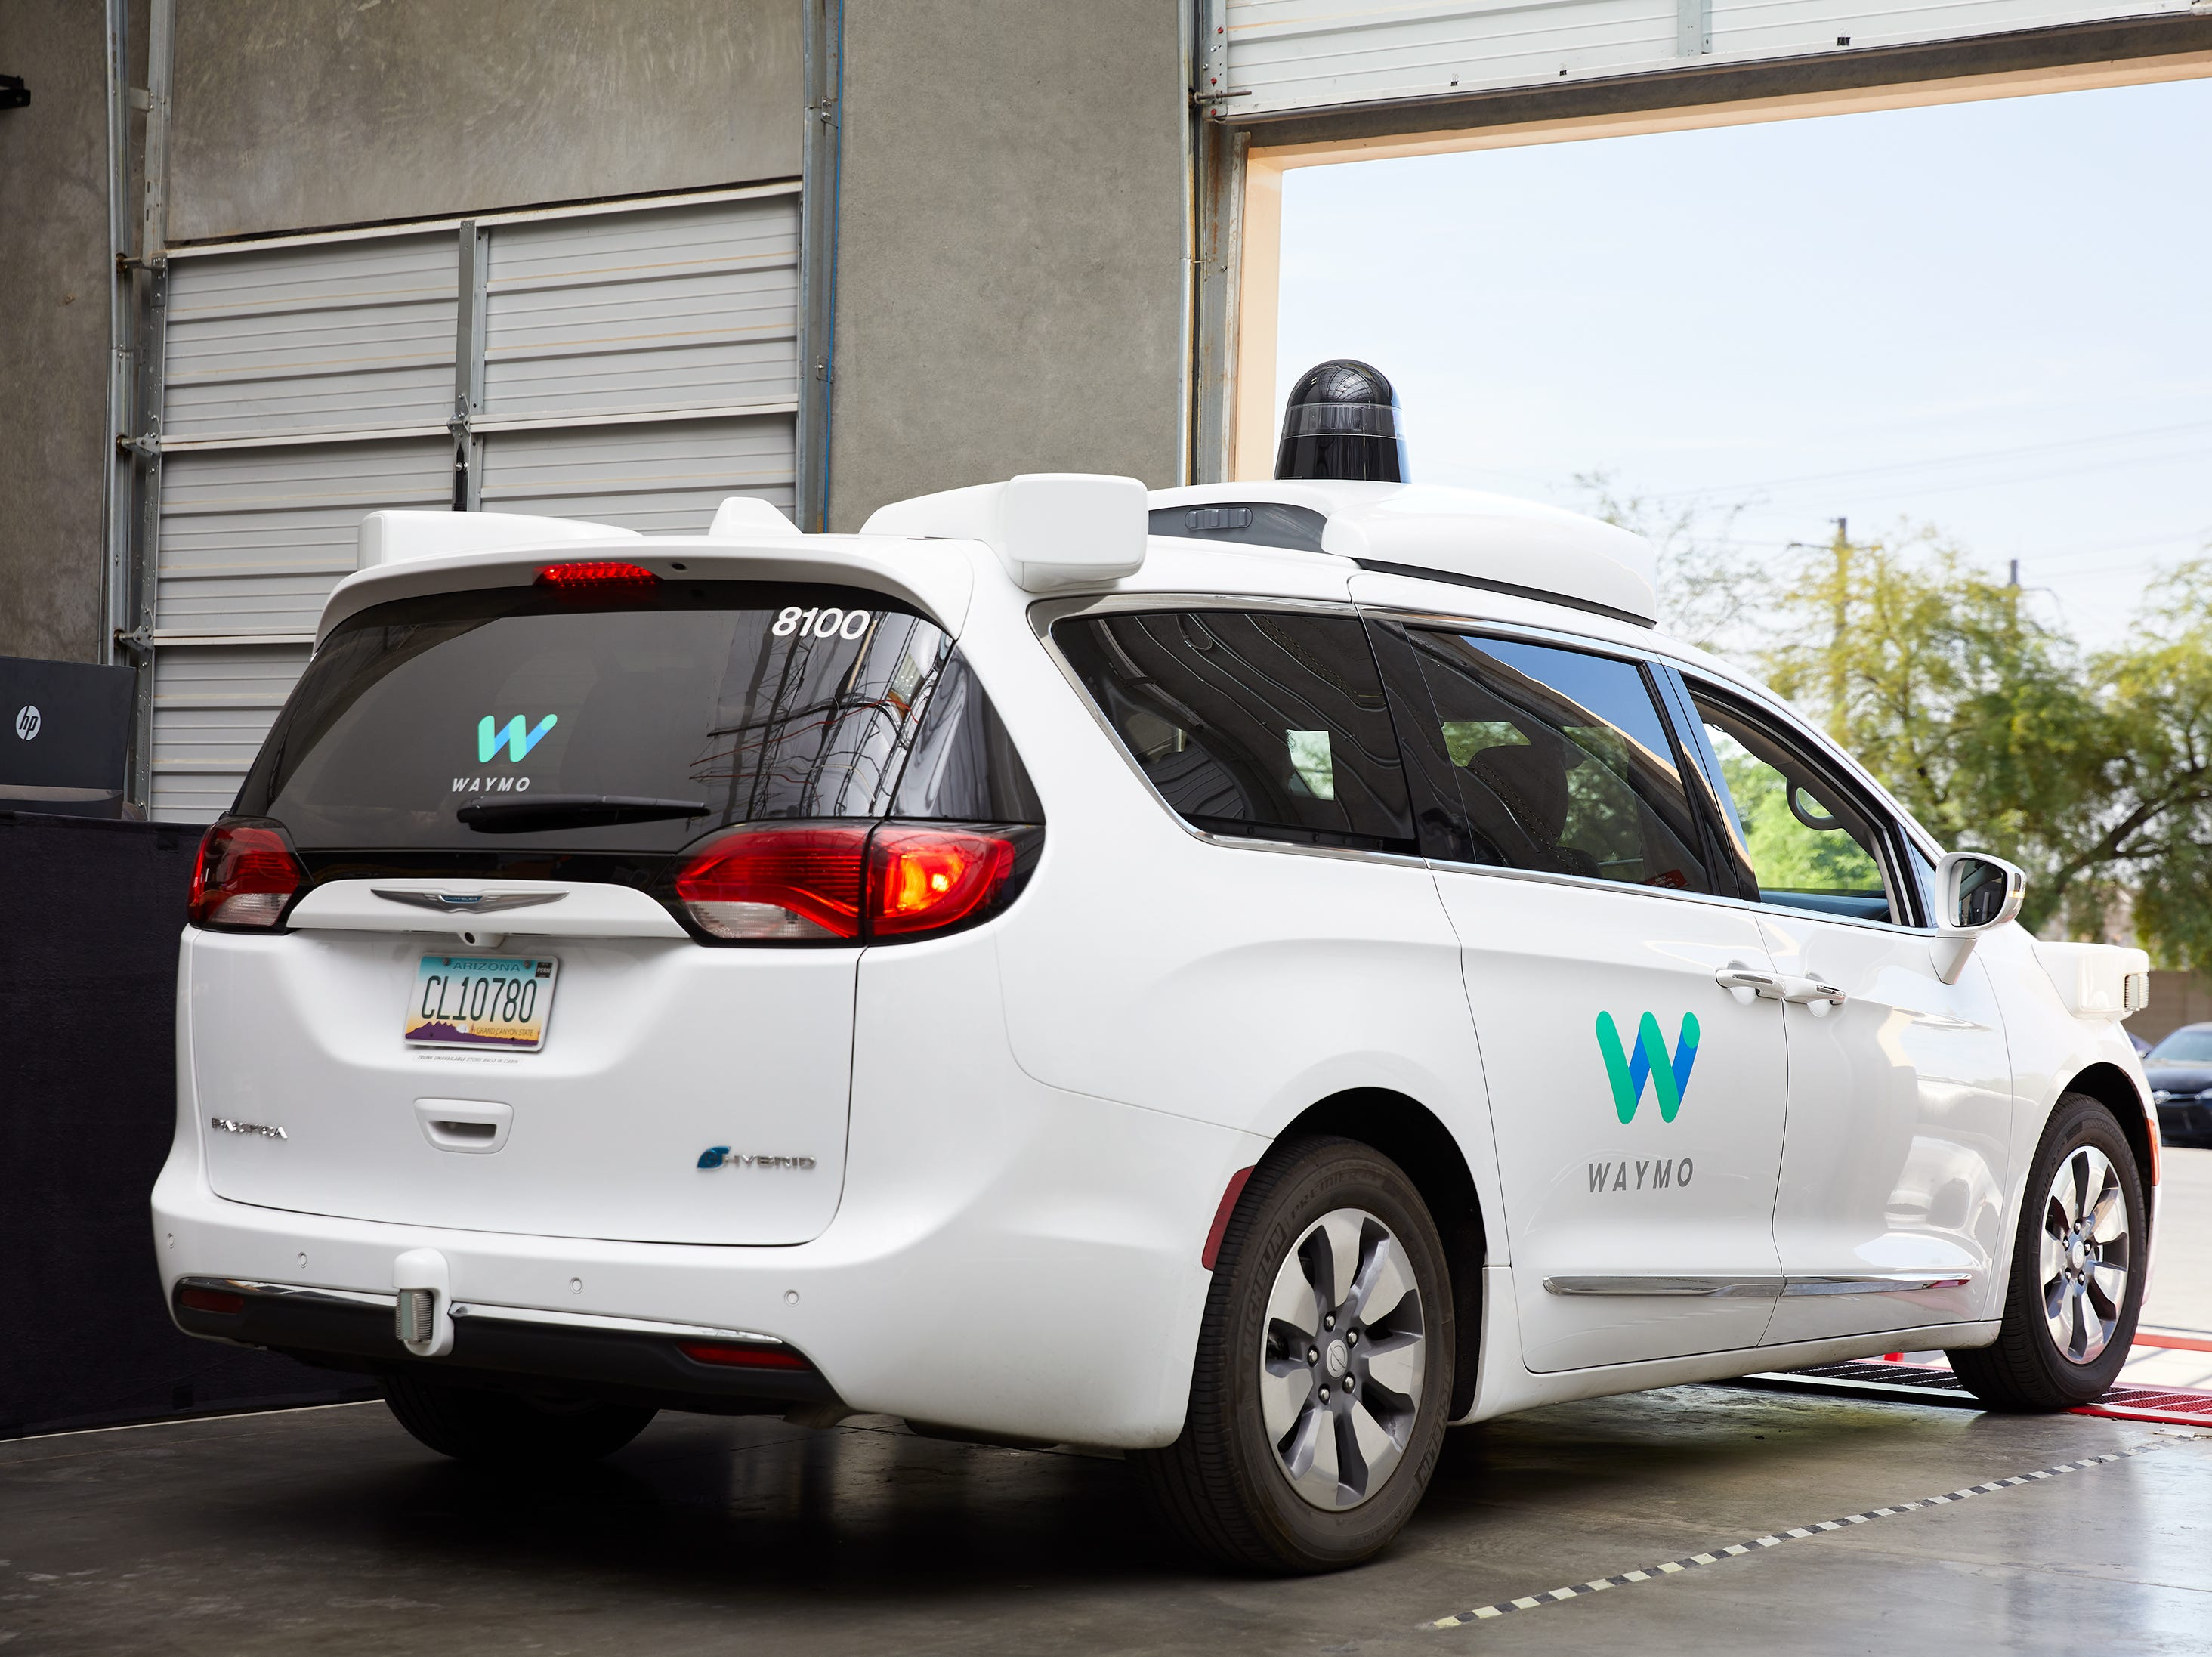 The Waymo operations center in Chandler is expanding. The operations center is where Waymo services its self-driving vehicles, and where employees dispatch the cars and assist riders.